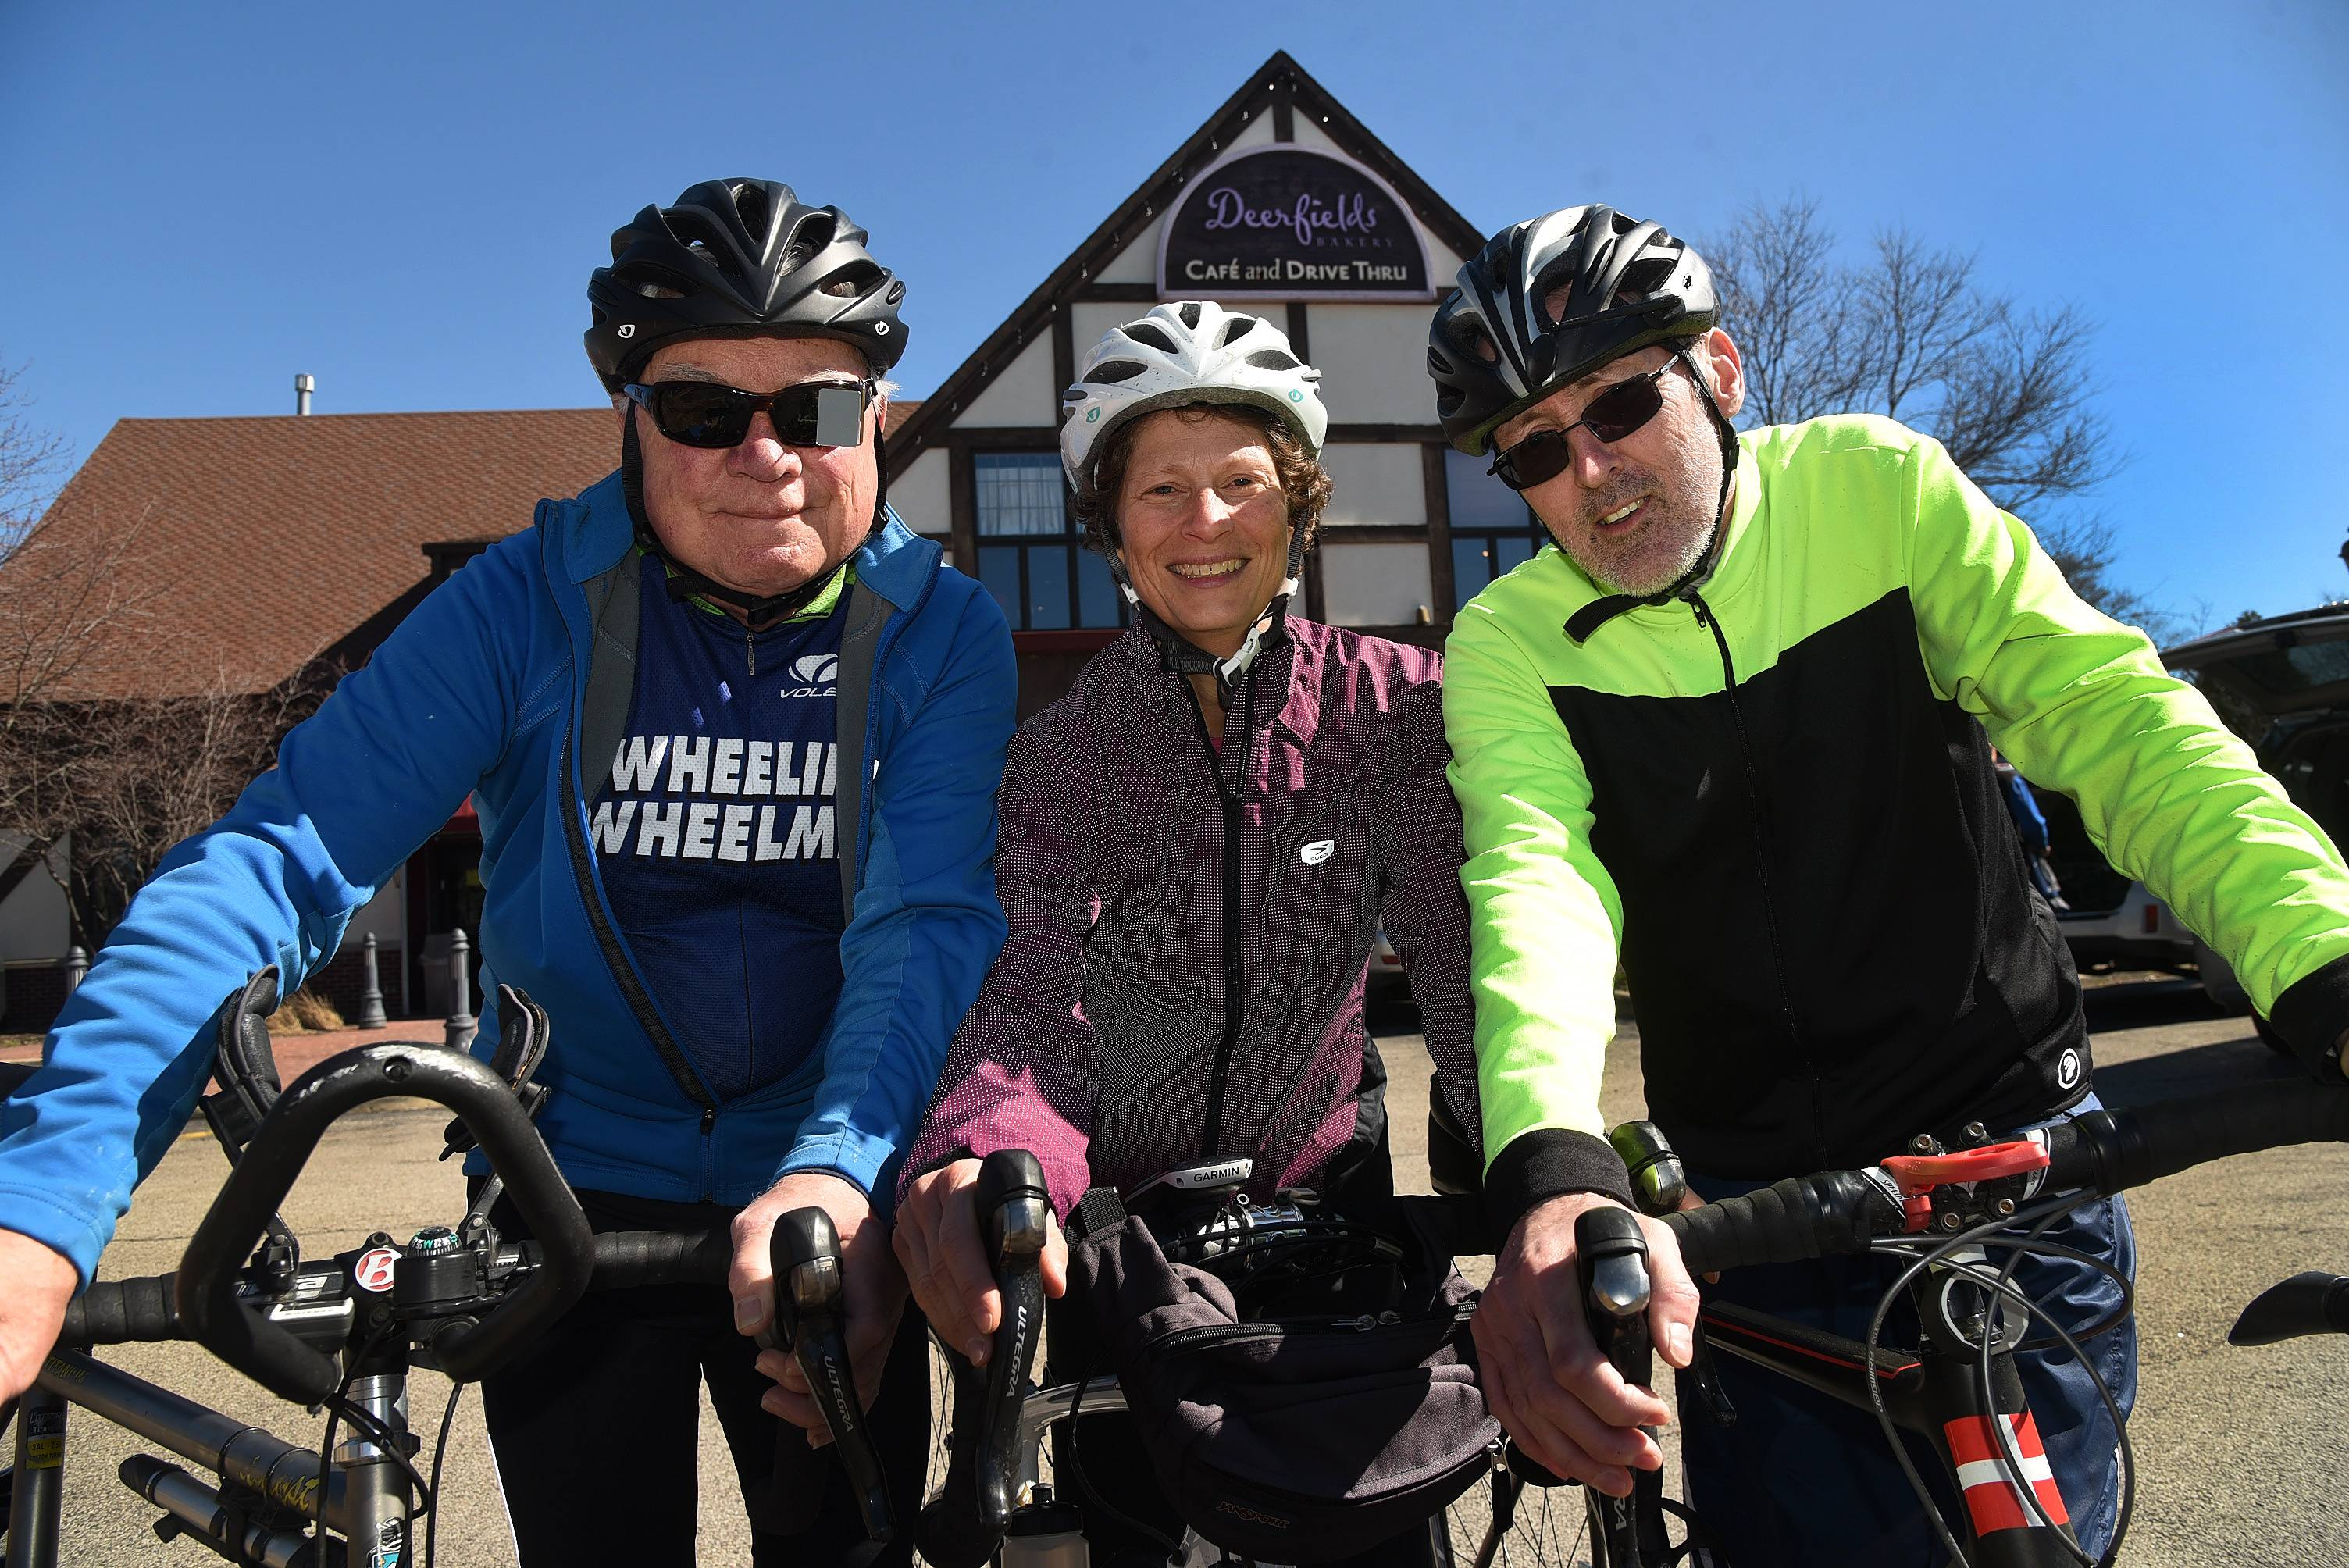 From left, Joe Beemster of Wheeling, Emily Qualich of Buffalo Grove and Johannes Smits of Roselle, members of the Wheeling Wheelmen's Club, are ready for the club's St. Patrick's Day ride, which takes place March 19 in Wauconda.